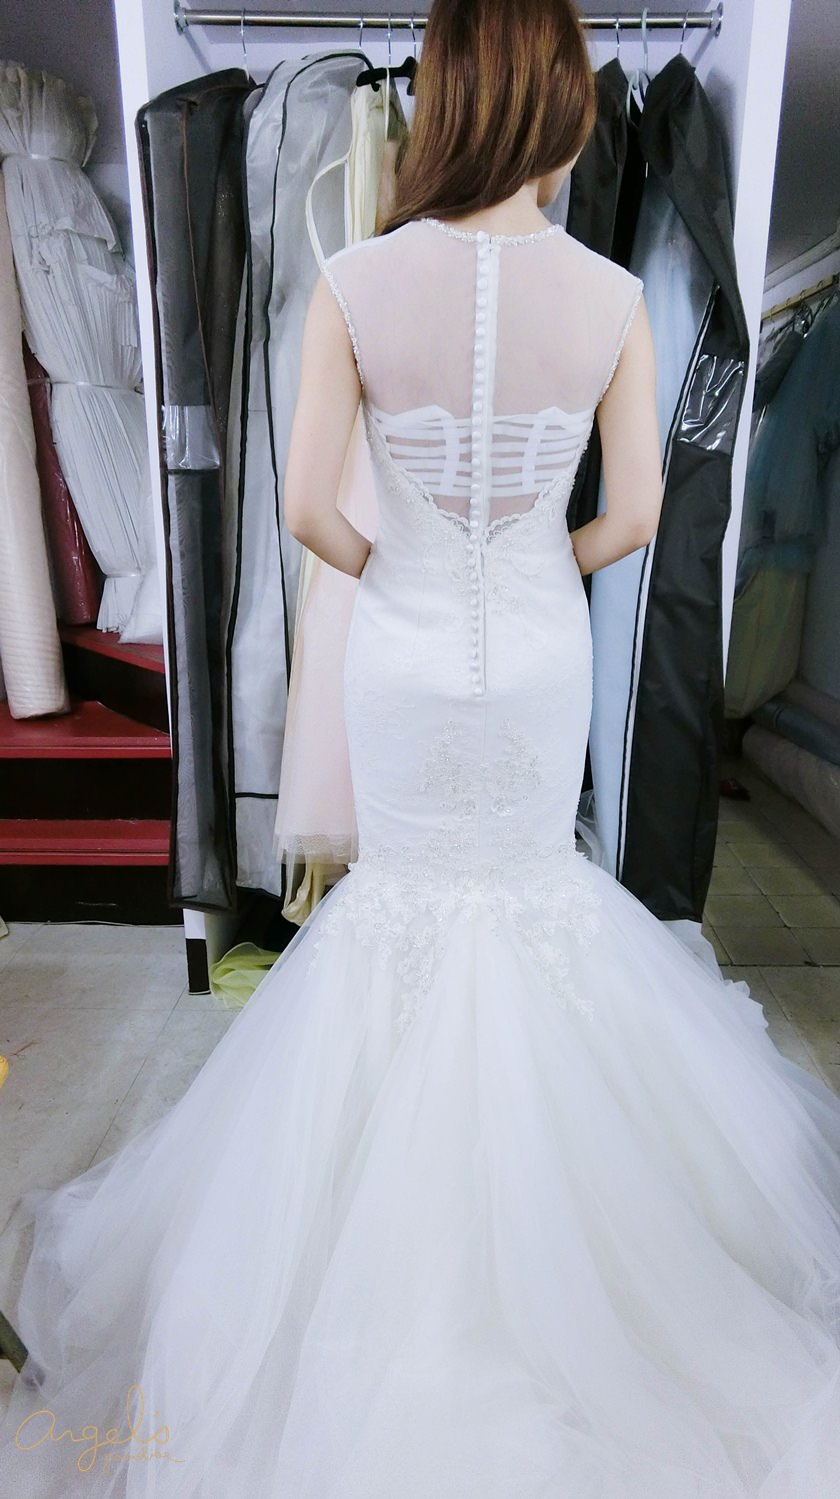 weddingdressCIMG0135